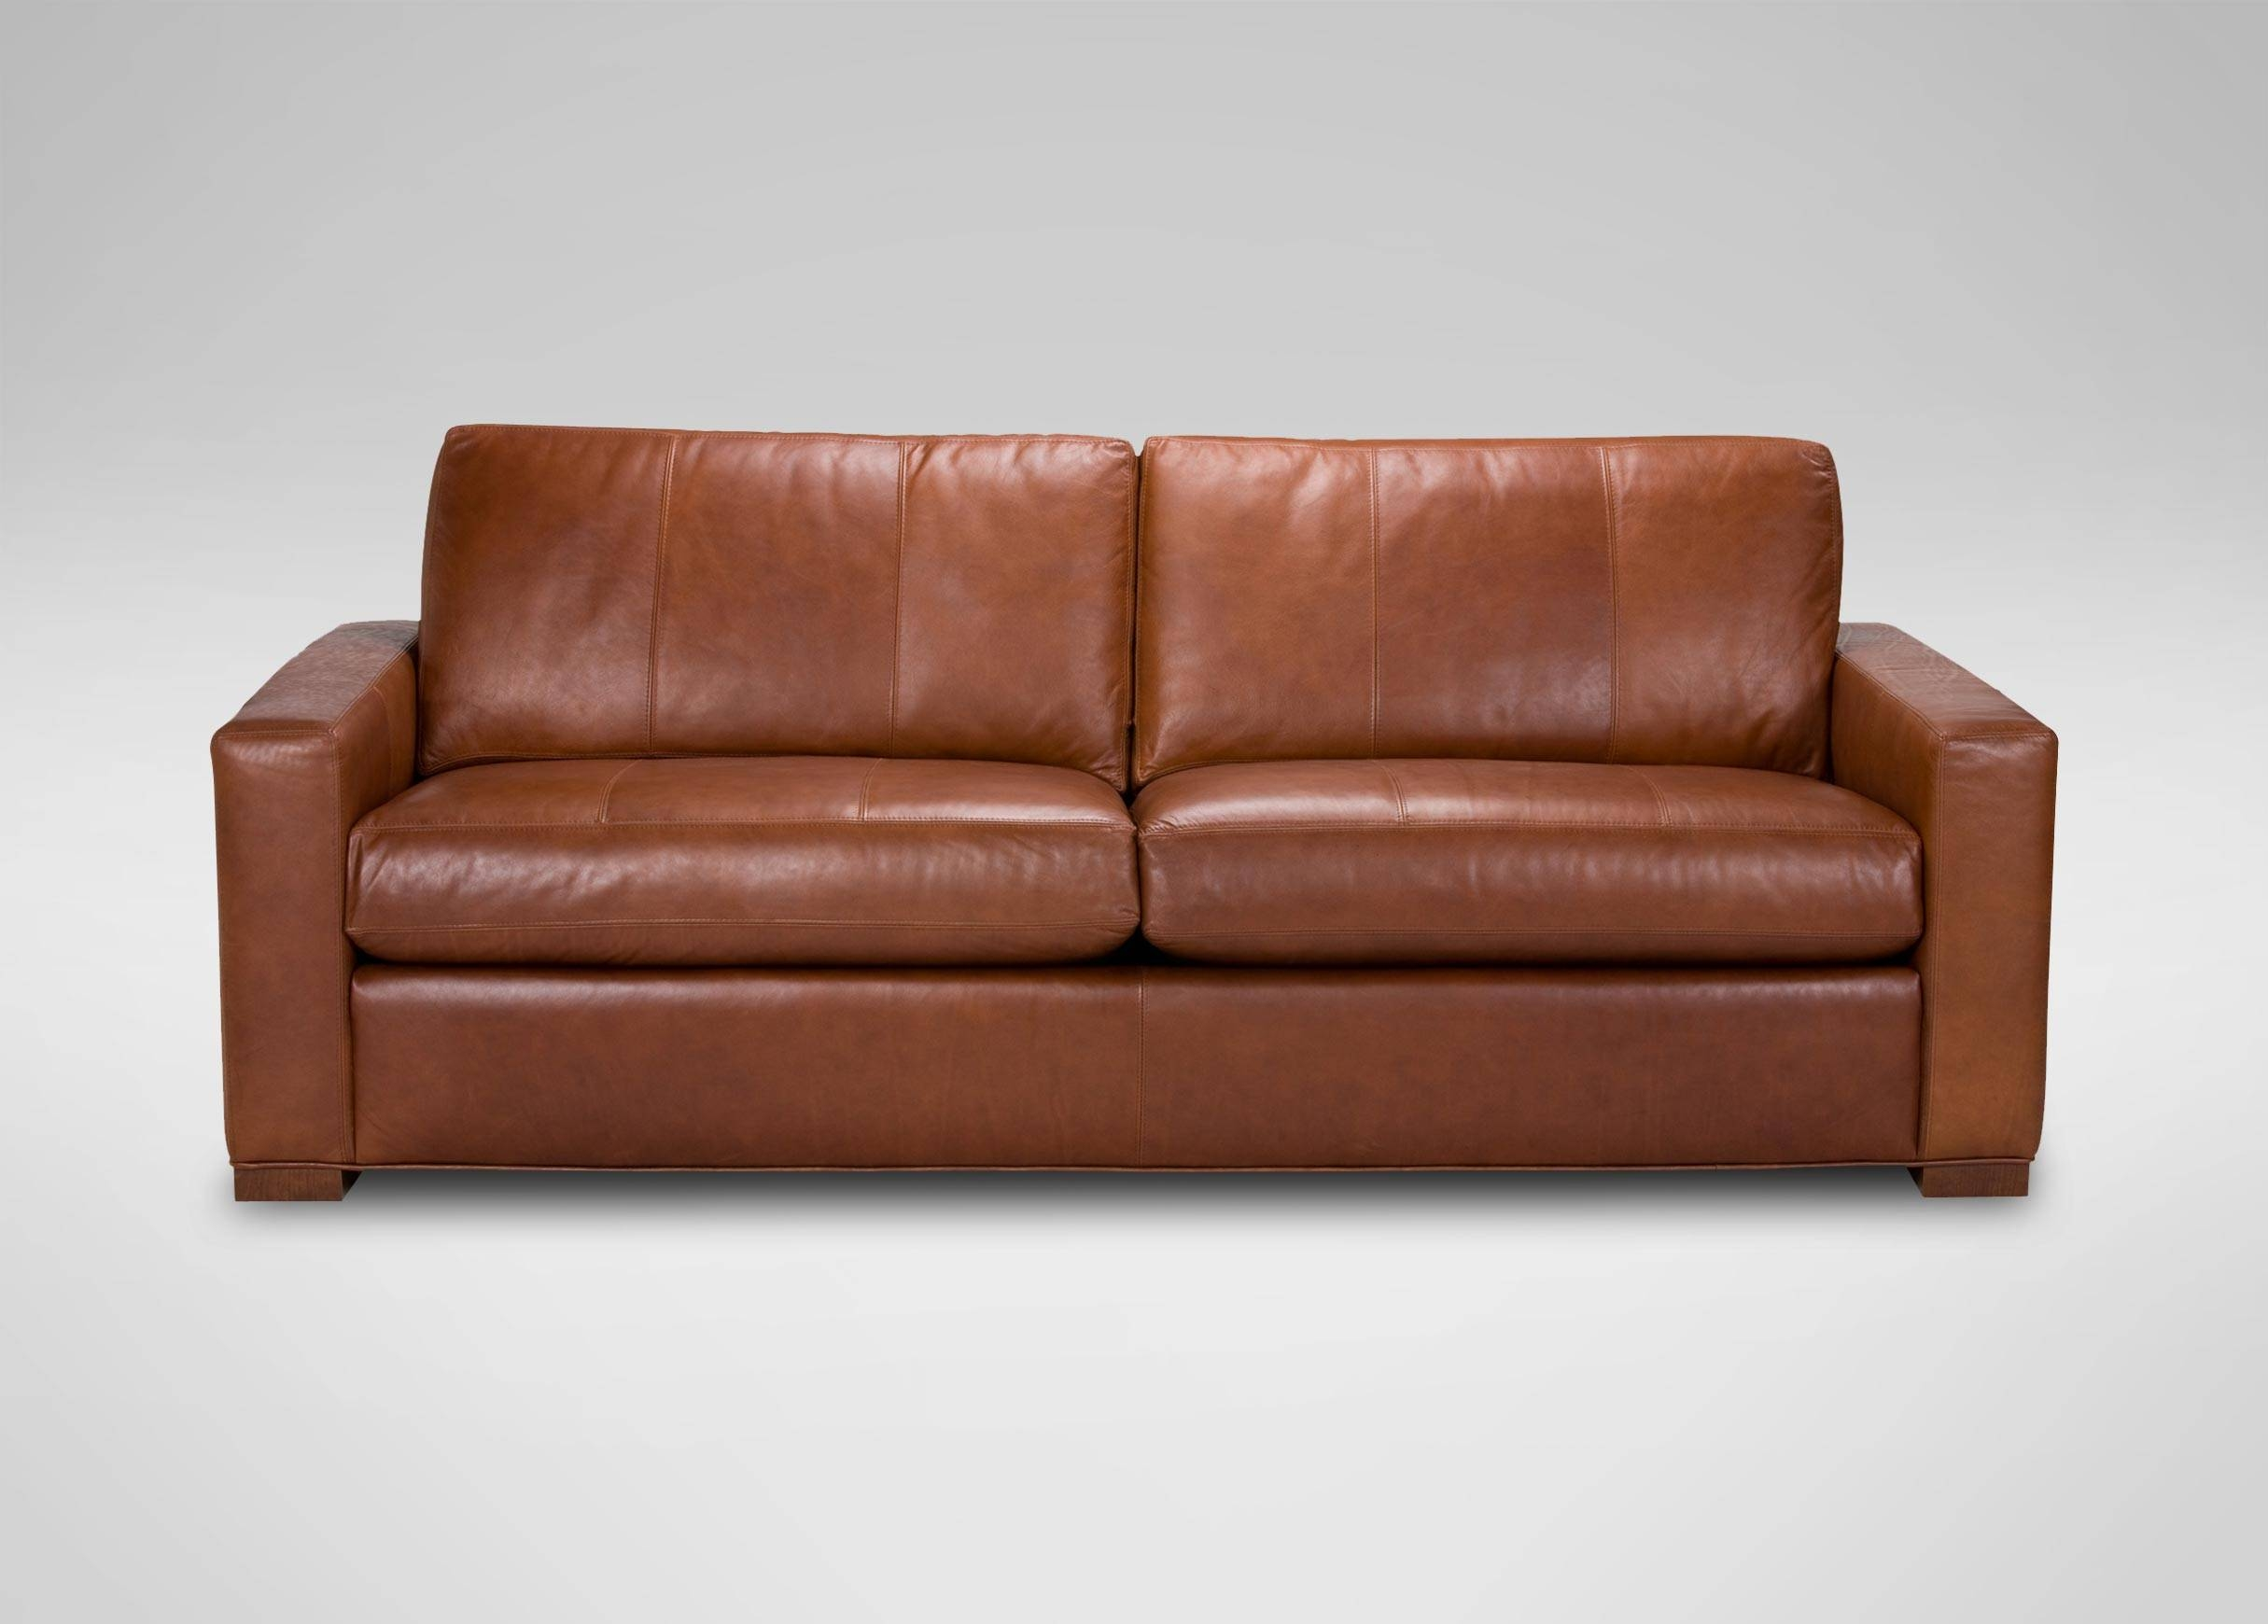 Hudson Leather Sofa | Sofas & Loveseats pertaining to Carmel Leather Sofas (Image 8 of 15)